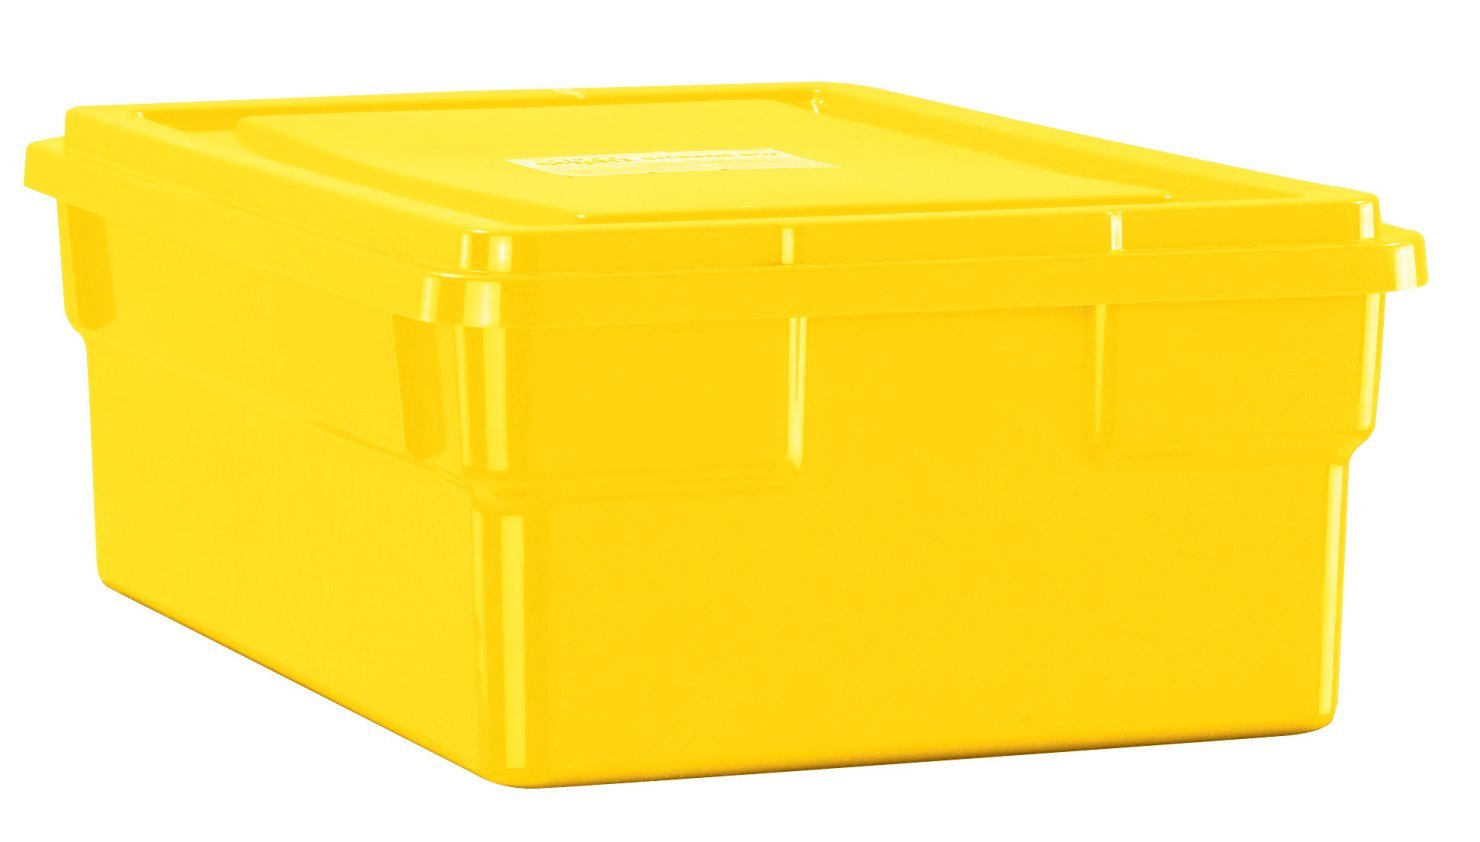 Captivating Childcraft Storage Box With Lid   16 X 11 X 6 Inches   Yellow: Early  Childhood Development Products: Amazon.com: Industrial U0026 Scientific